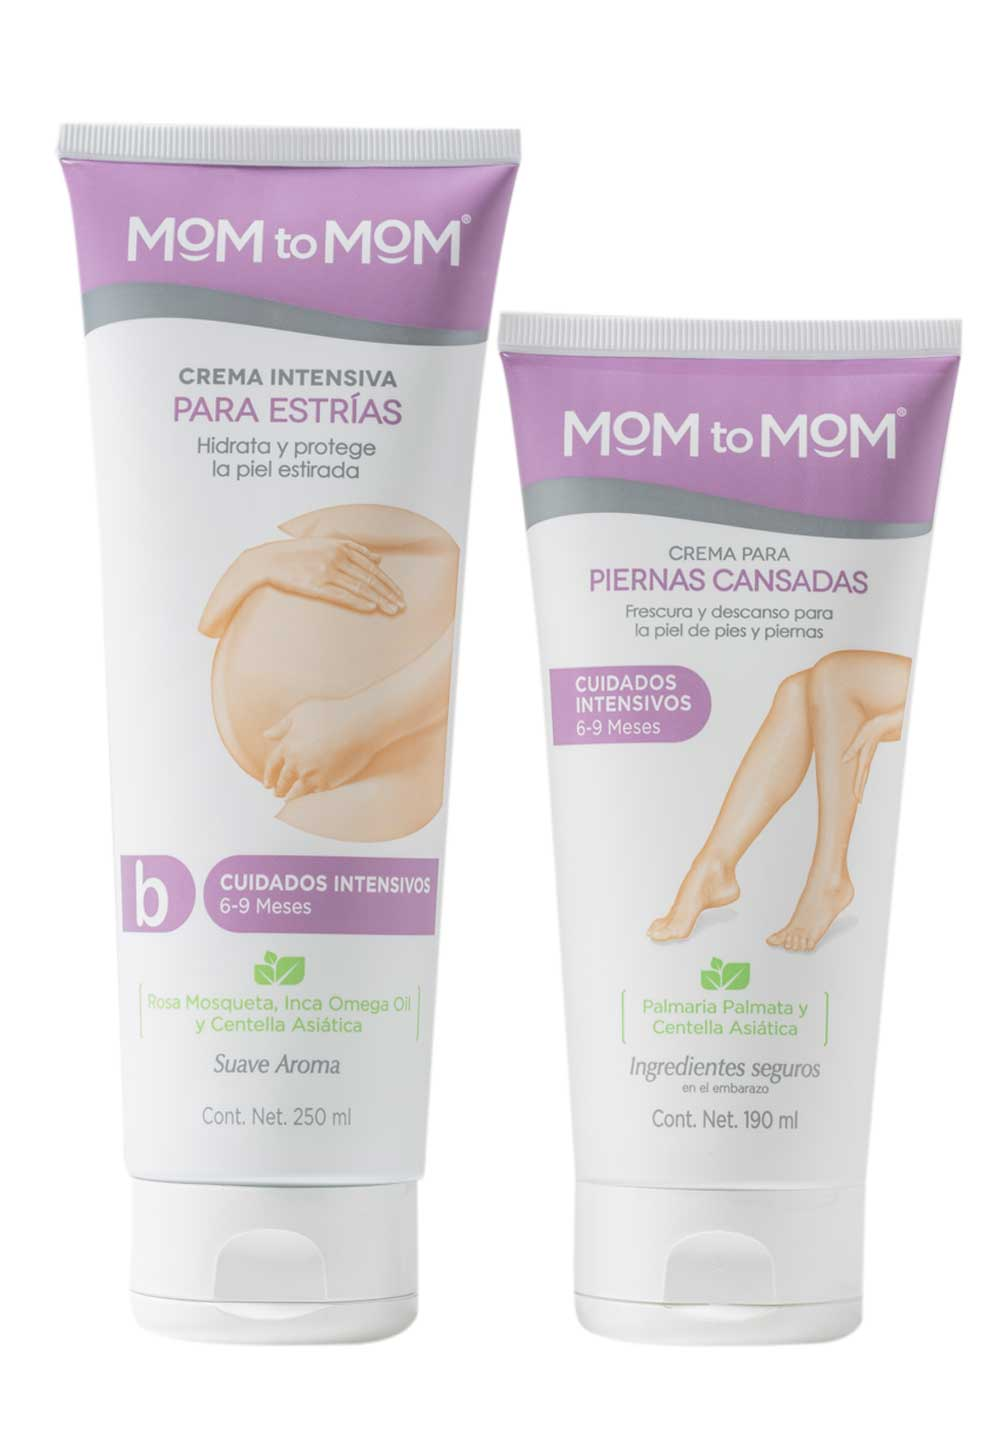 "Kit MOM to MOM ETAPA ""b"" - 2 productos"